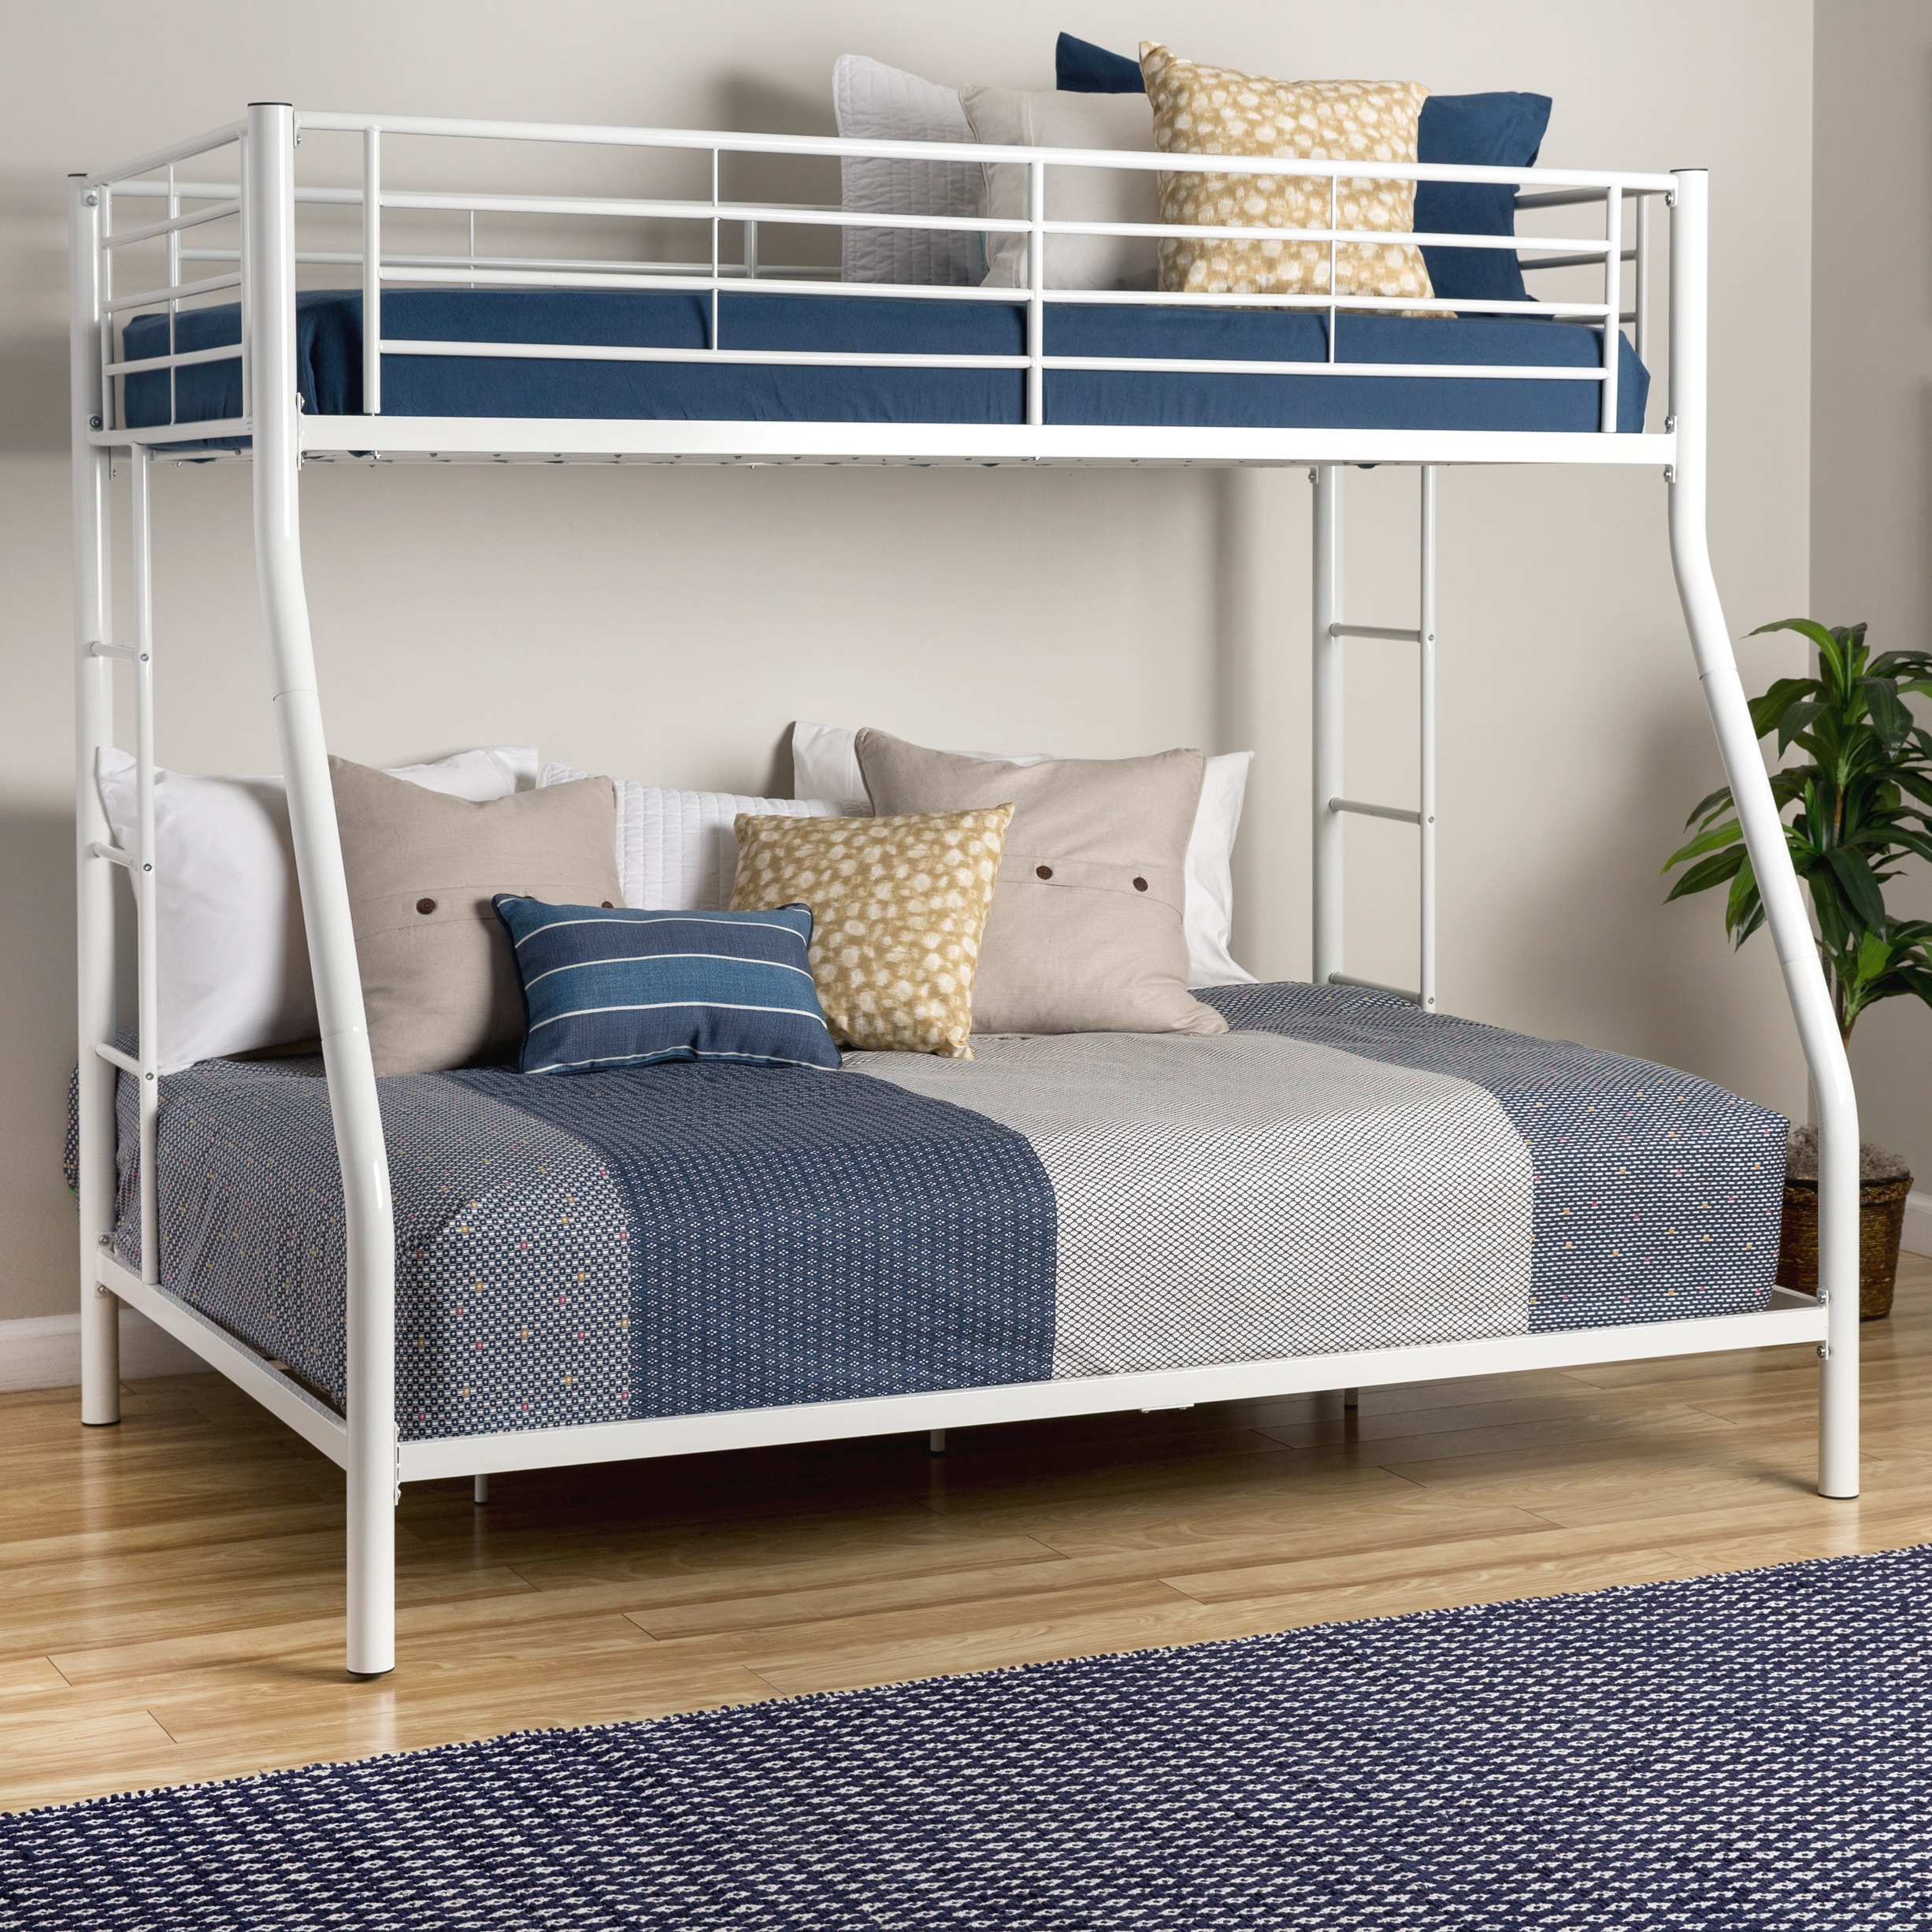 White Metal Bunk Bed Twin Over Full On Free Shipping Today 3992660